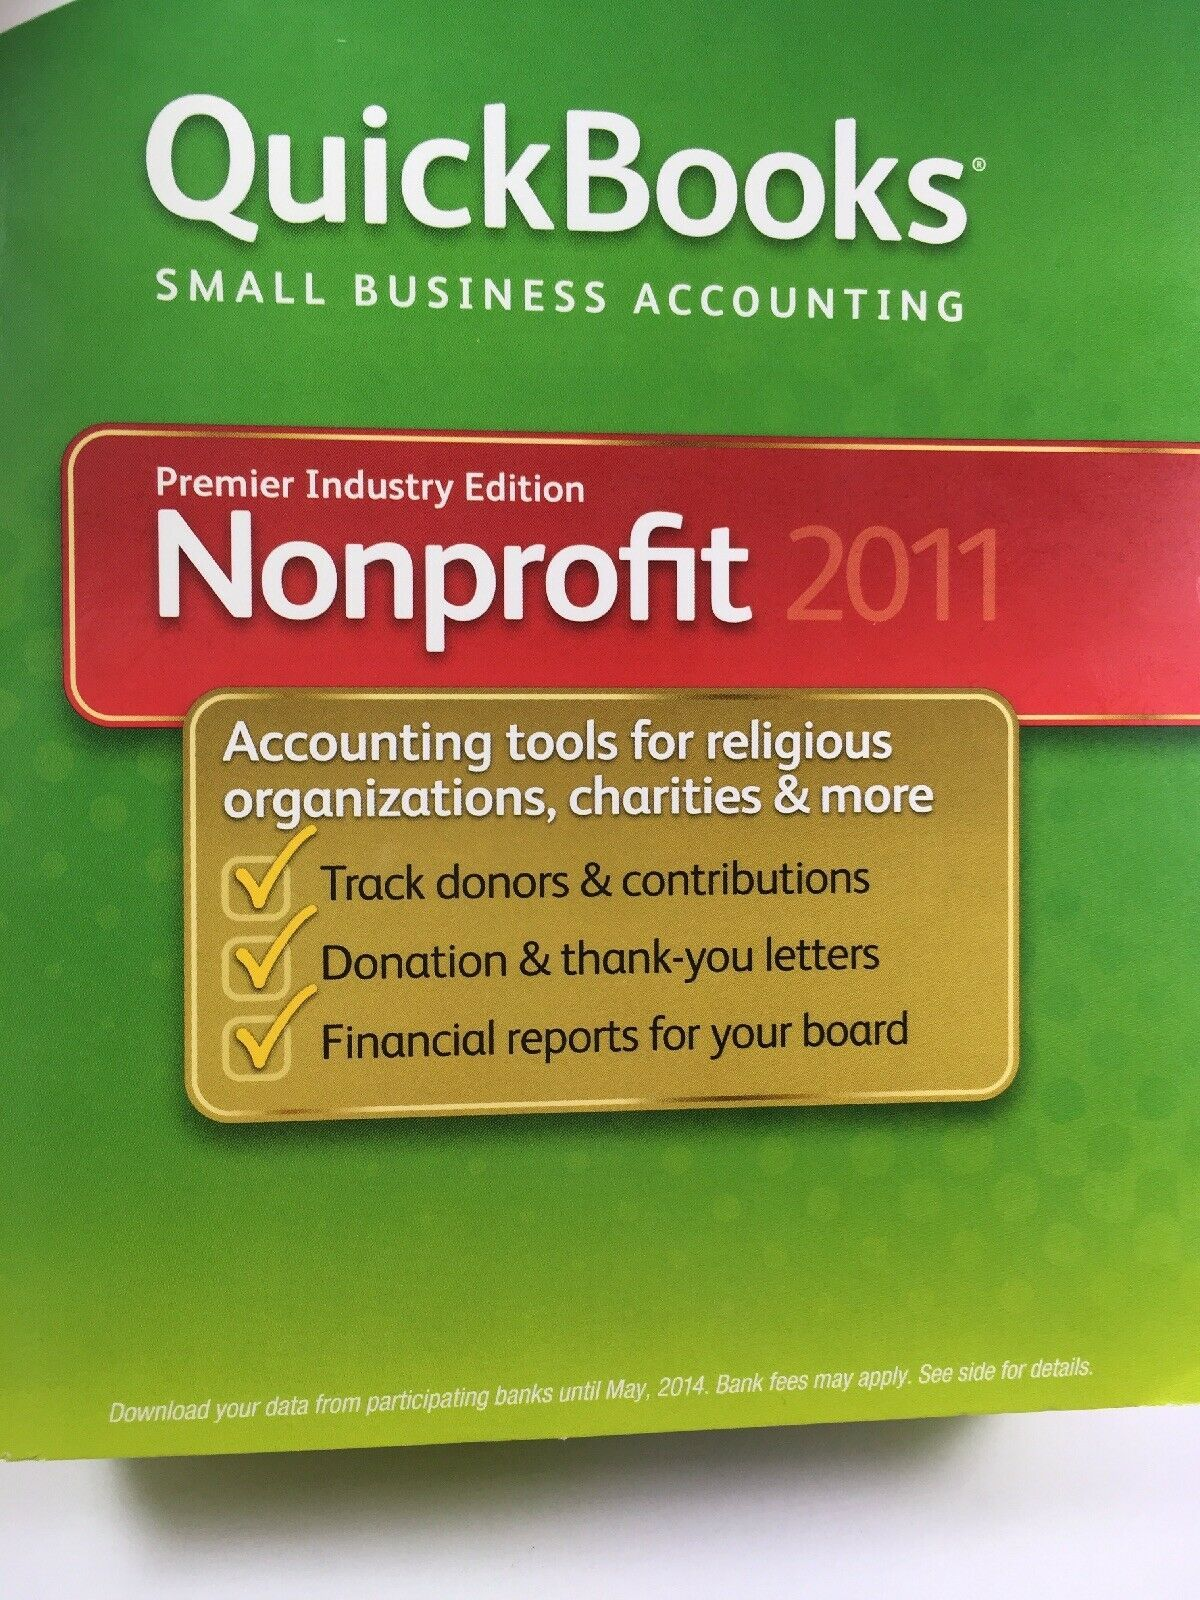 Quickbooks Premier Industry Edition Nonprofit 2011 Windows 7, Vista, XP image 9